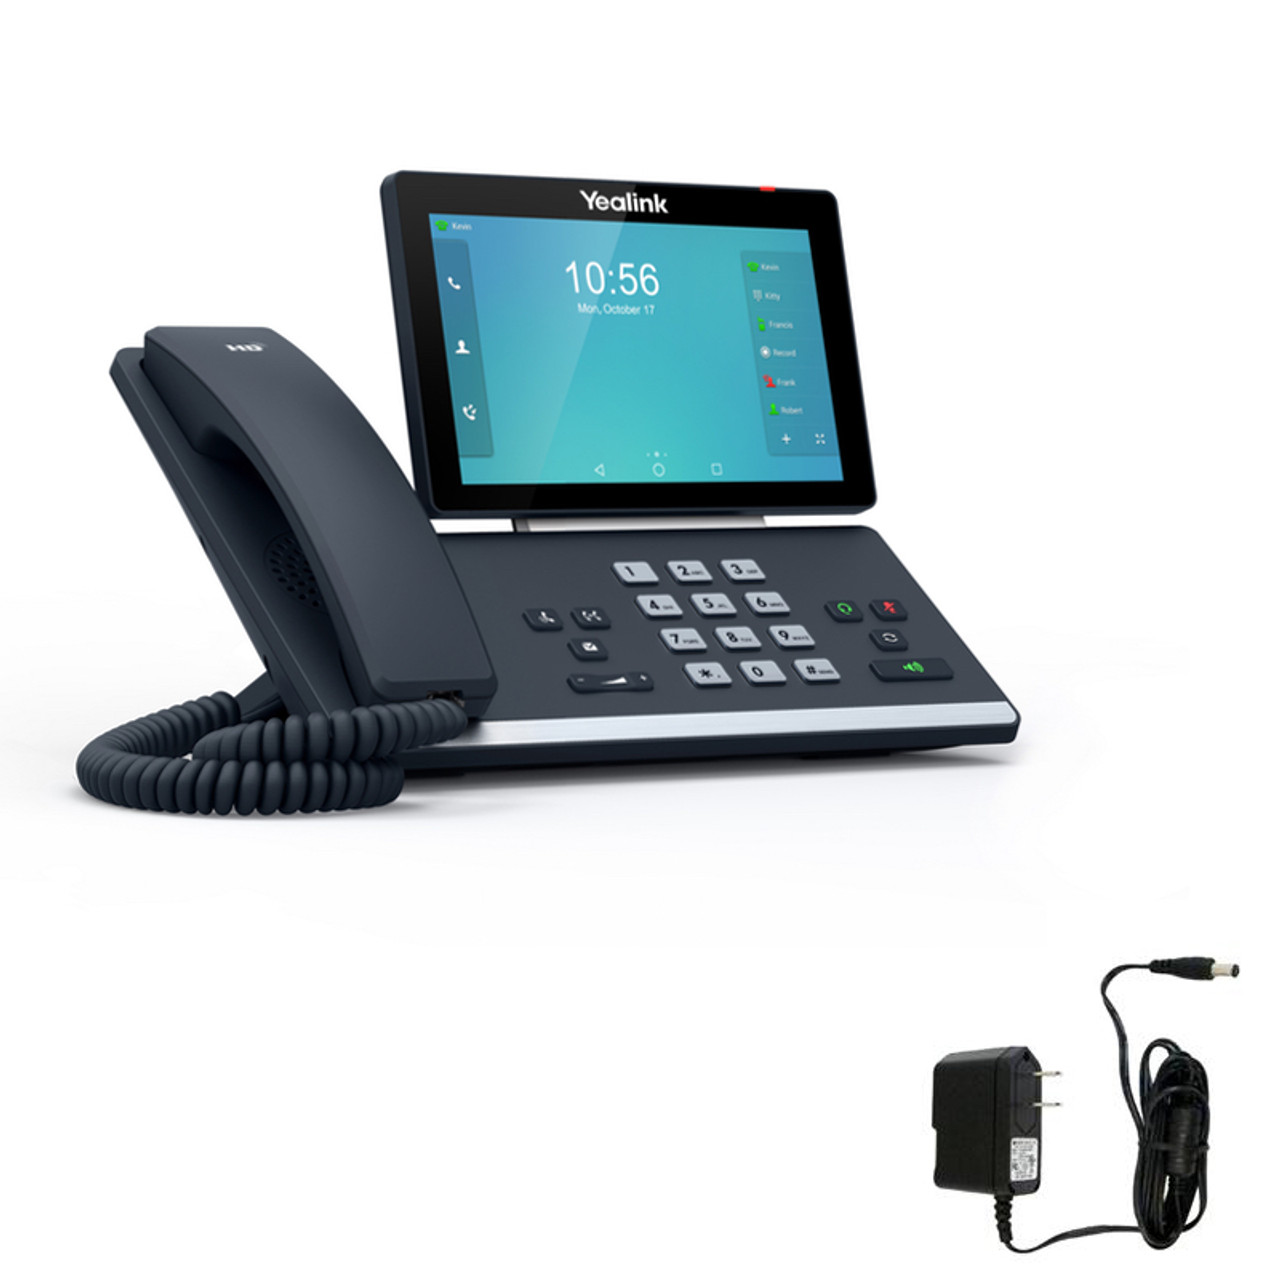 Yealink T58A Video Collaboration Phone With Power Supply | Skype for  Business Version | #SIP-T58A-SFB